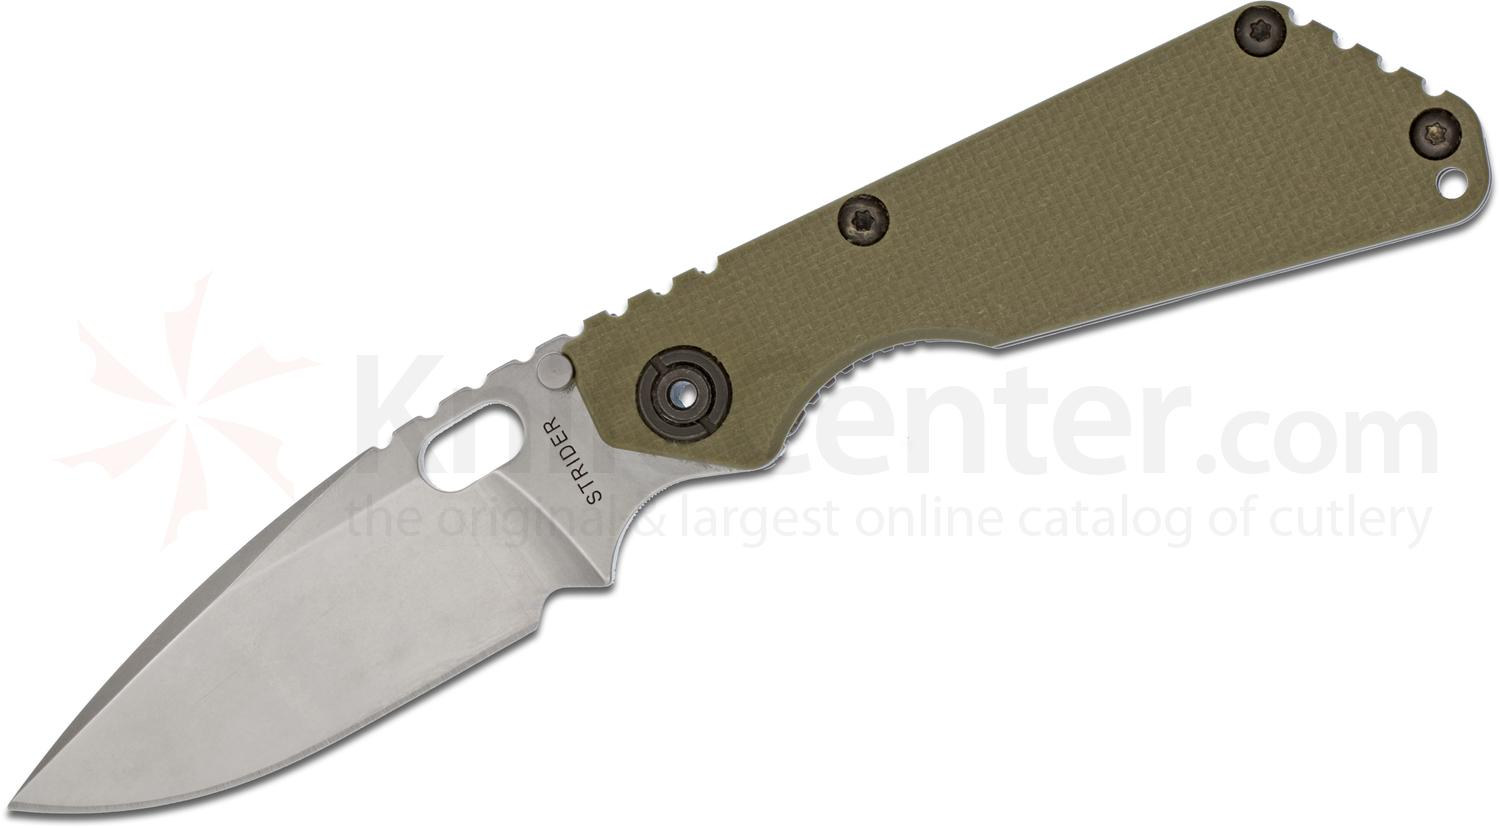 Strider Knives SnG Folding Knife 3.5 inch Stonewashed CTS-40CP Dagger Ground Blade, OD Green G10/Stonewashed Titanium Handles